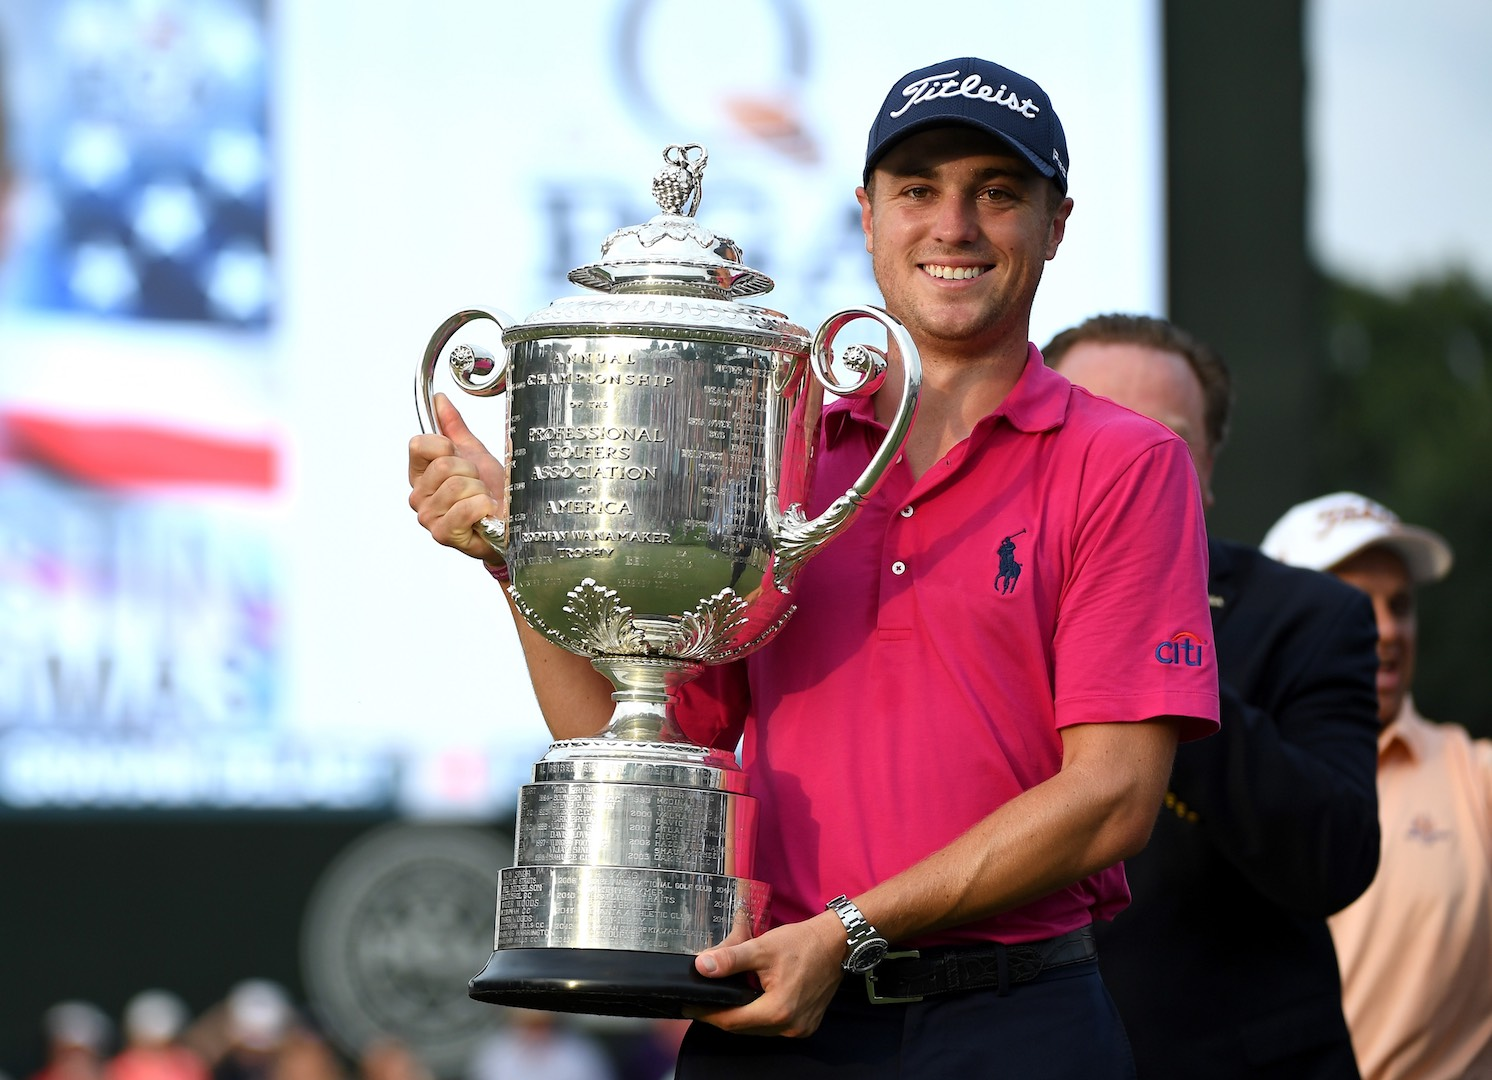 The Top 9 Walker Cup players